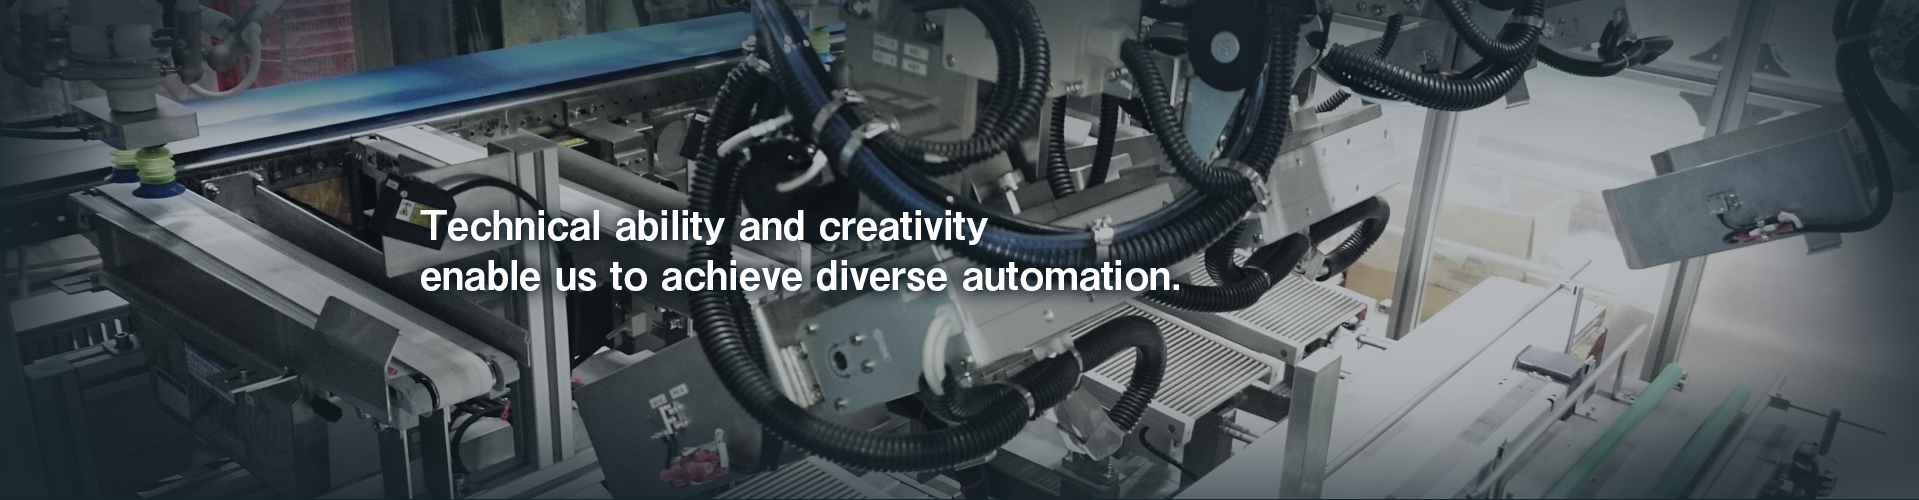 Technical ability and creativity enable us to achieve diverse automation.